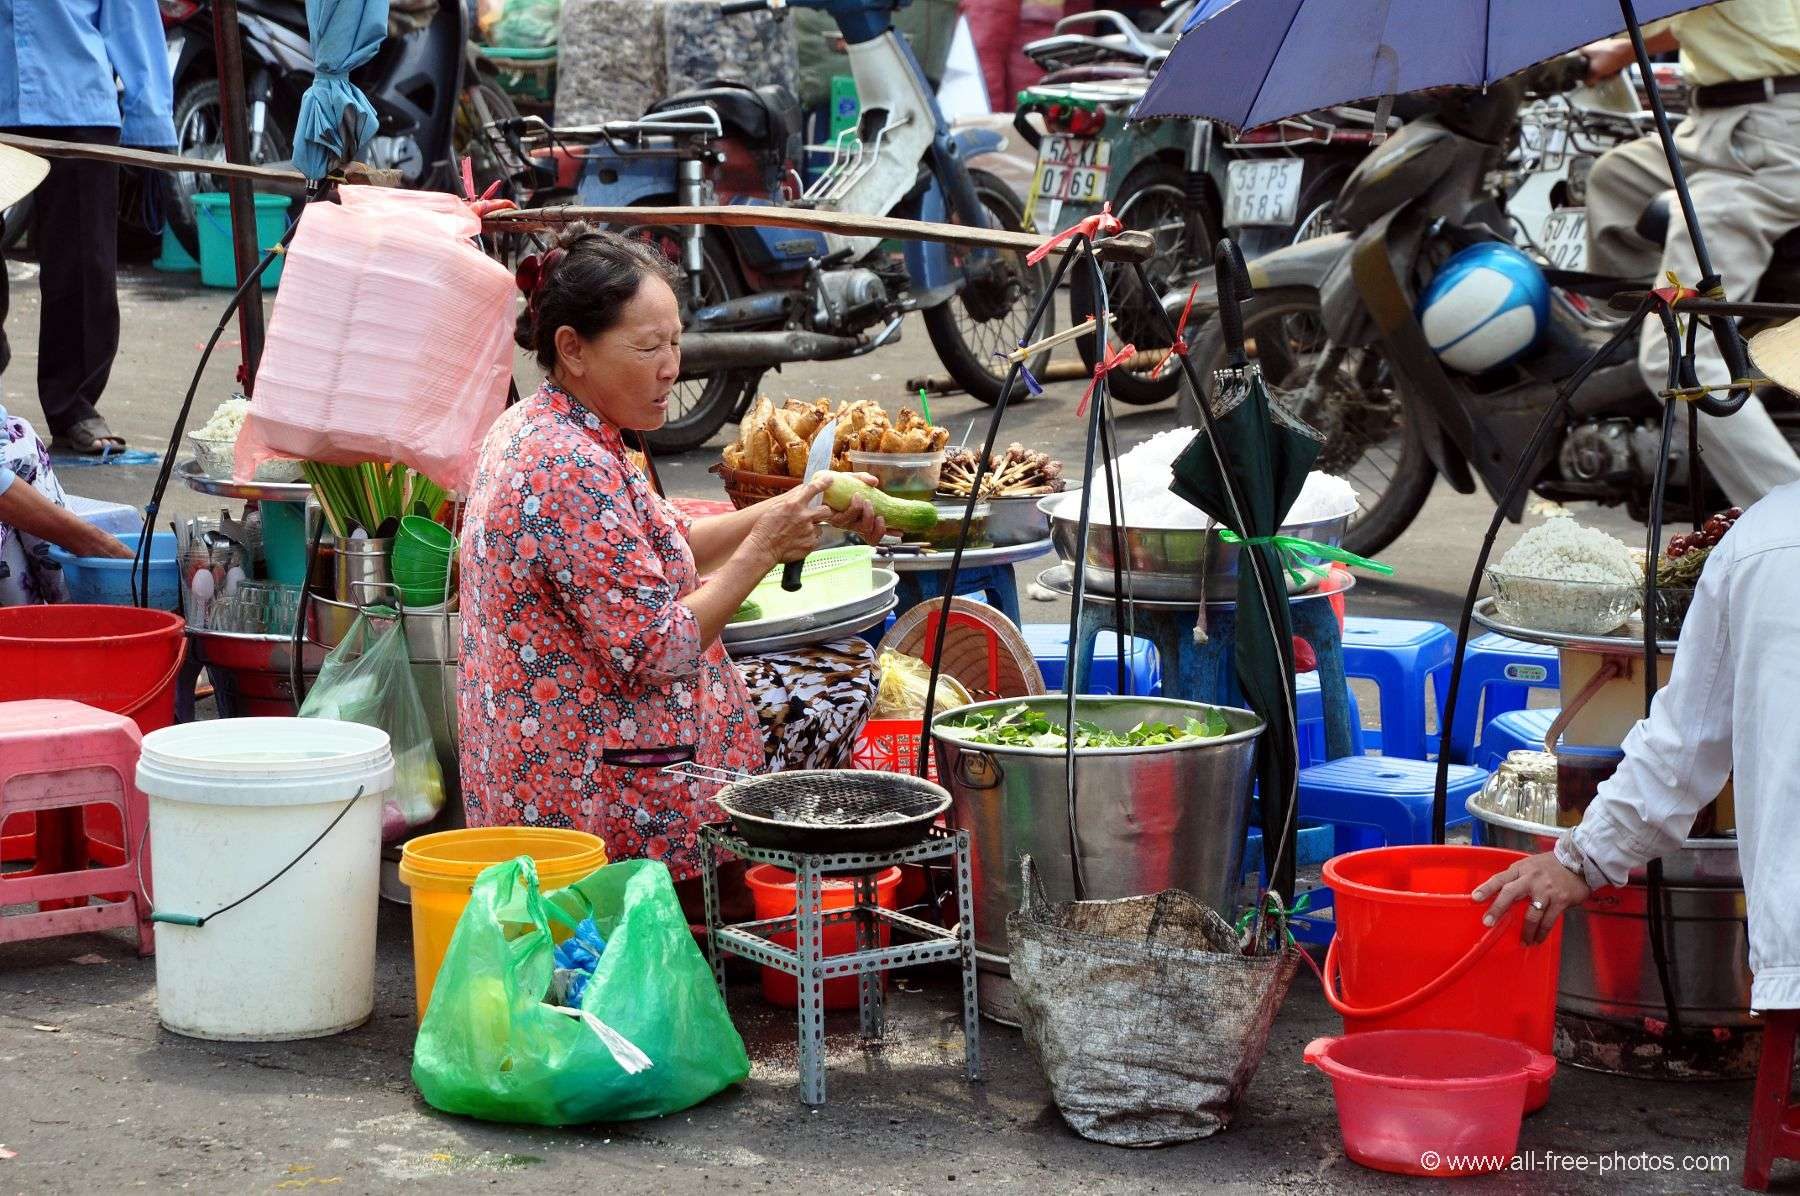 Daily life in Ho Chi Minh City - Vietnam